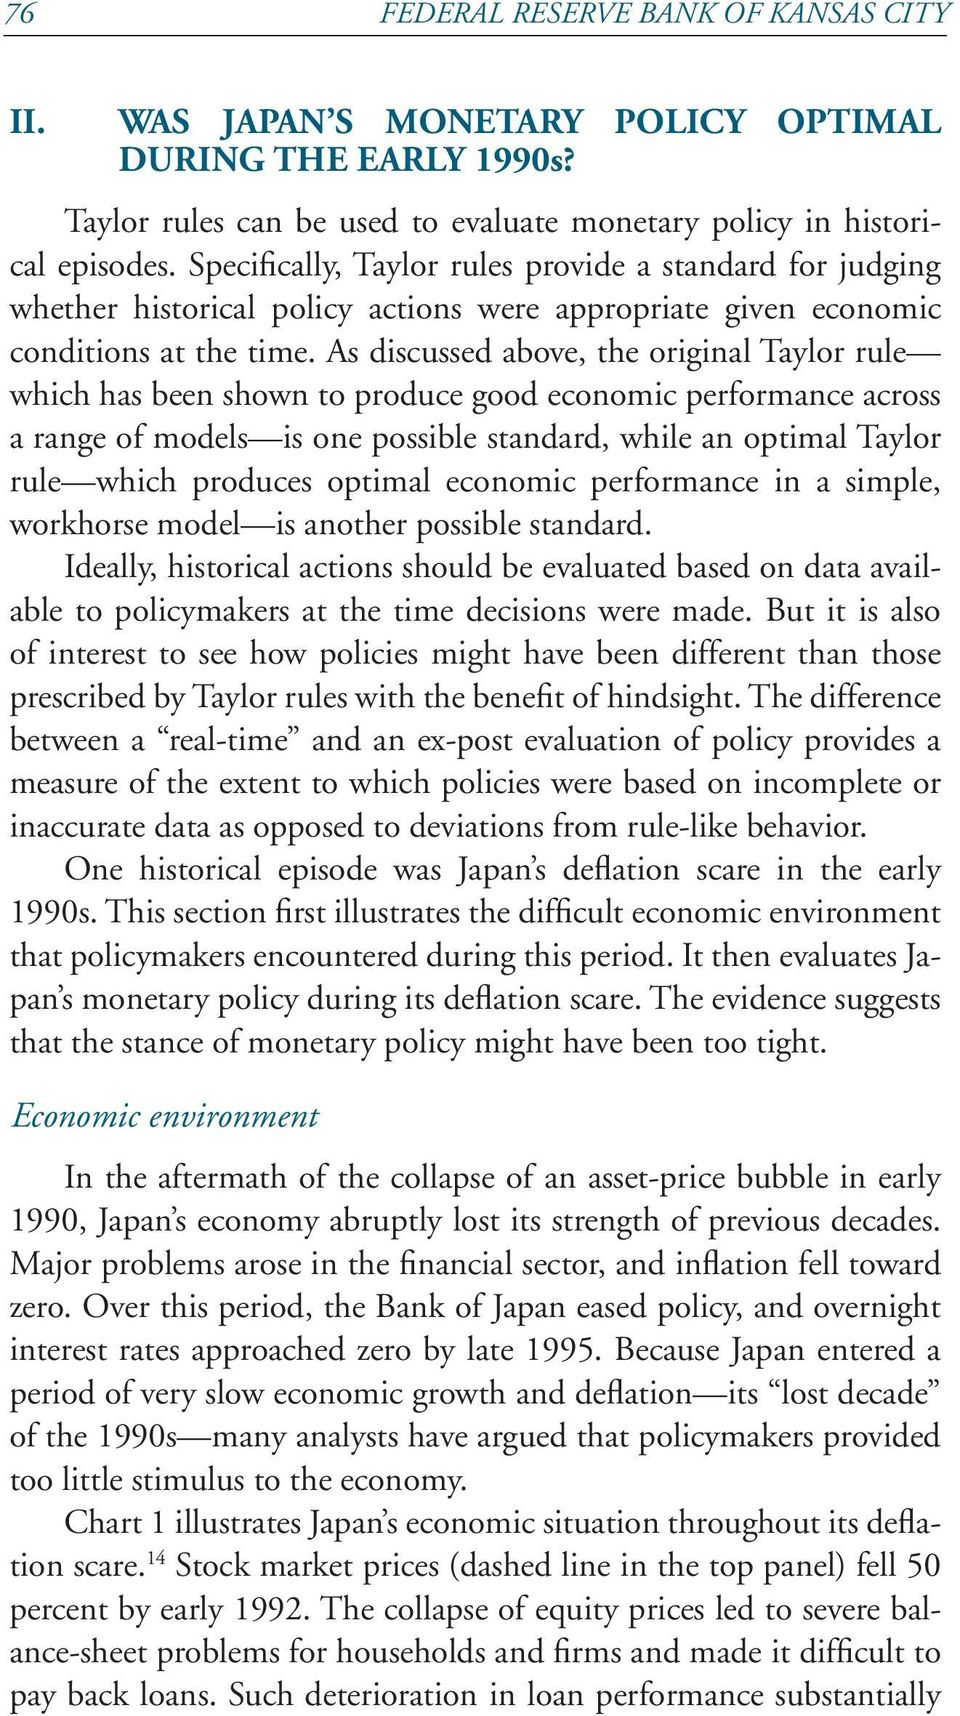 As discussed above, the original Taylor rule which has been shown to produce good economic performance across a range of models is one possible standard, while an optimal Taylor rule which produces